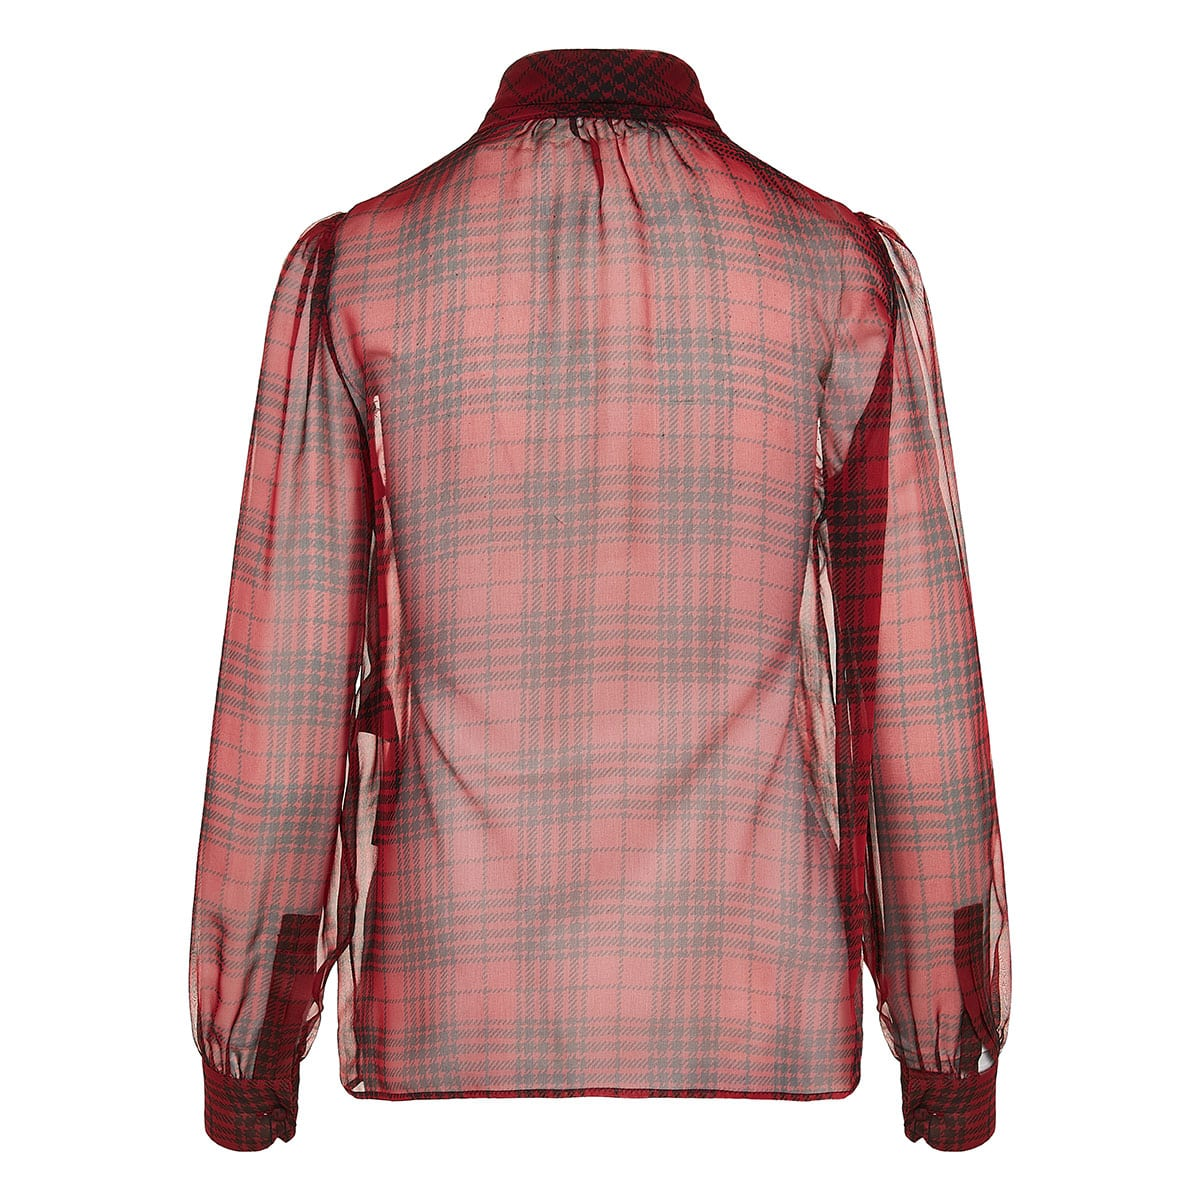 Bow-tie checked sheer shirt